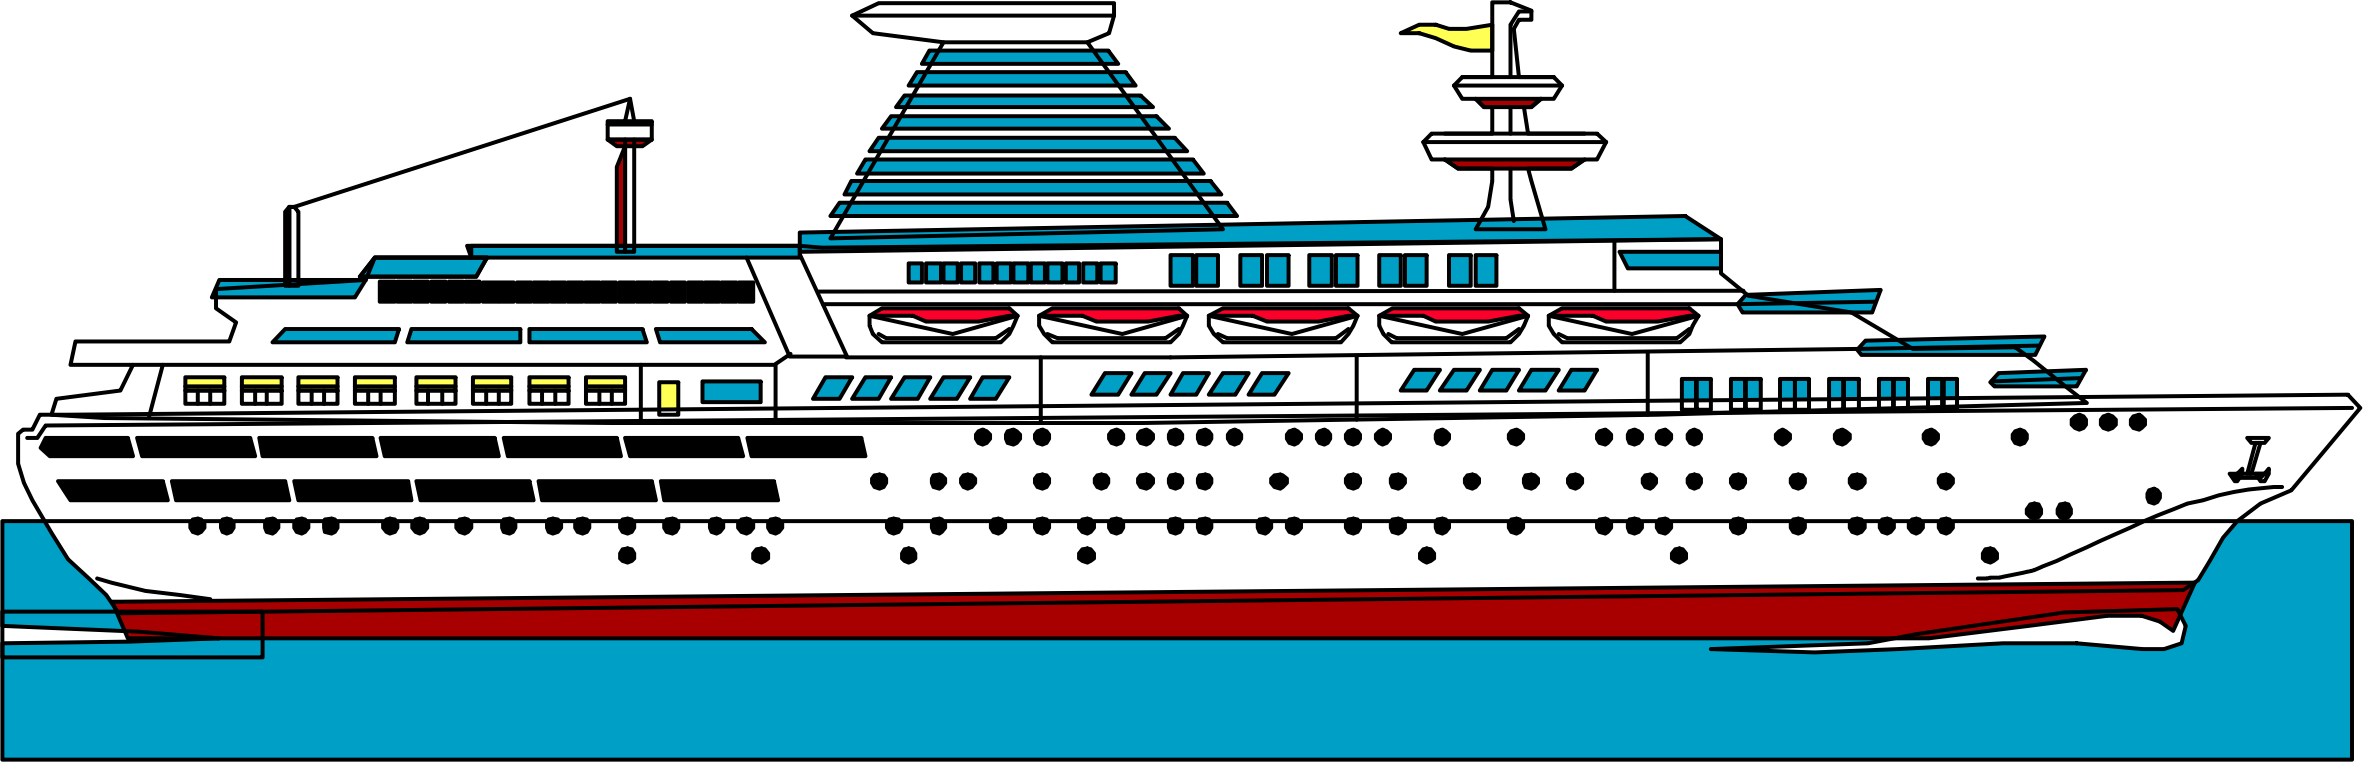 vector free library Yacht clipart. Big image png